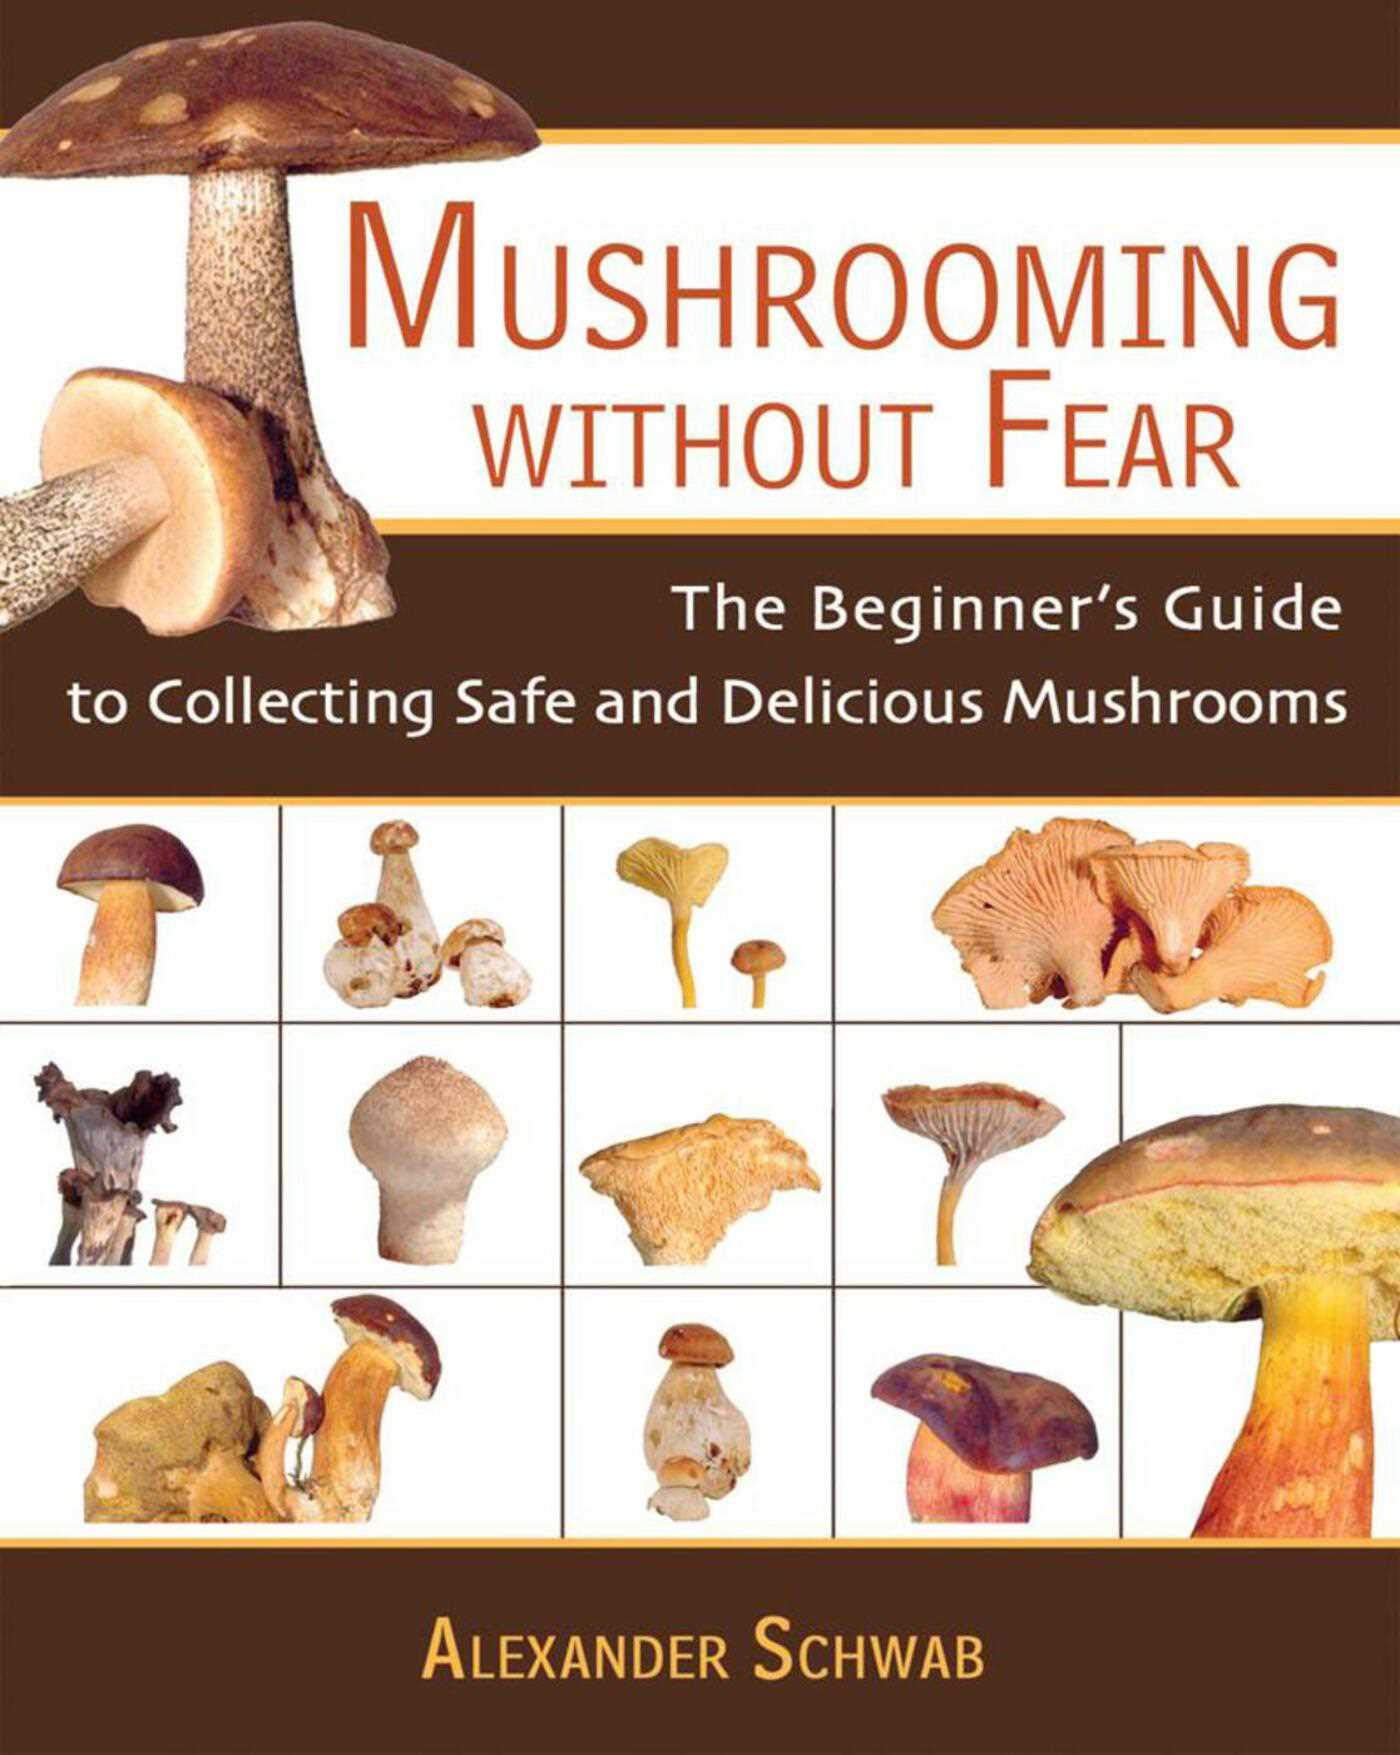 Mushrooming without Fear: The Beginner's Guide to Collecting Safe and  Delicious Mushrooms: Alexander Schwab: 8601421458931: Amazon.com: Books